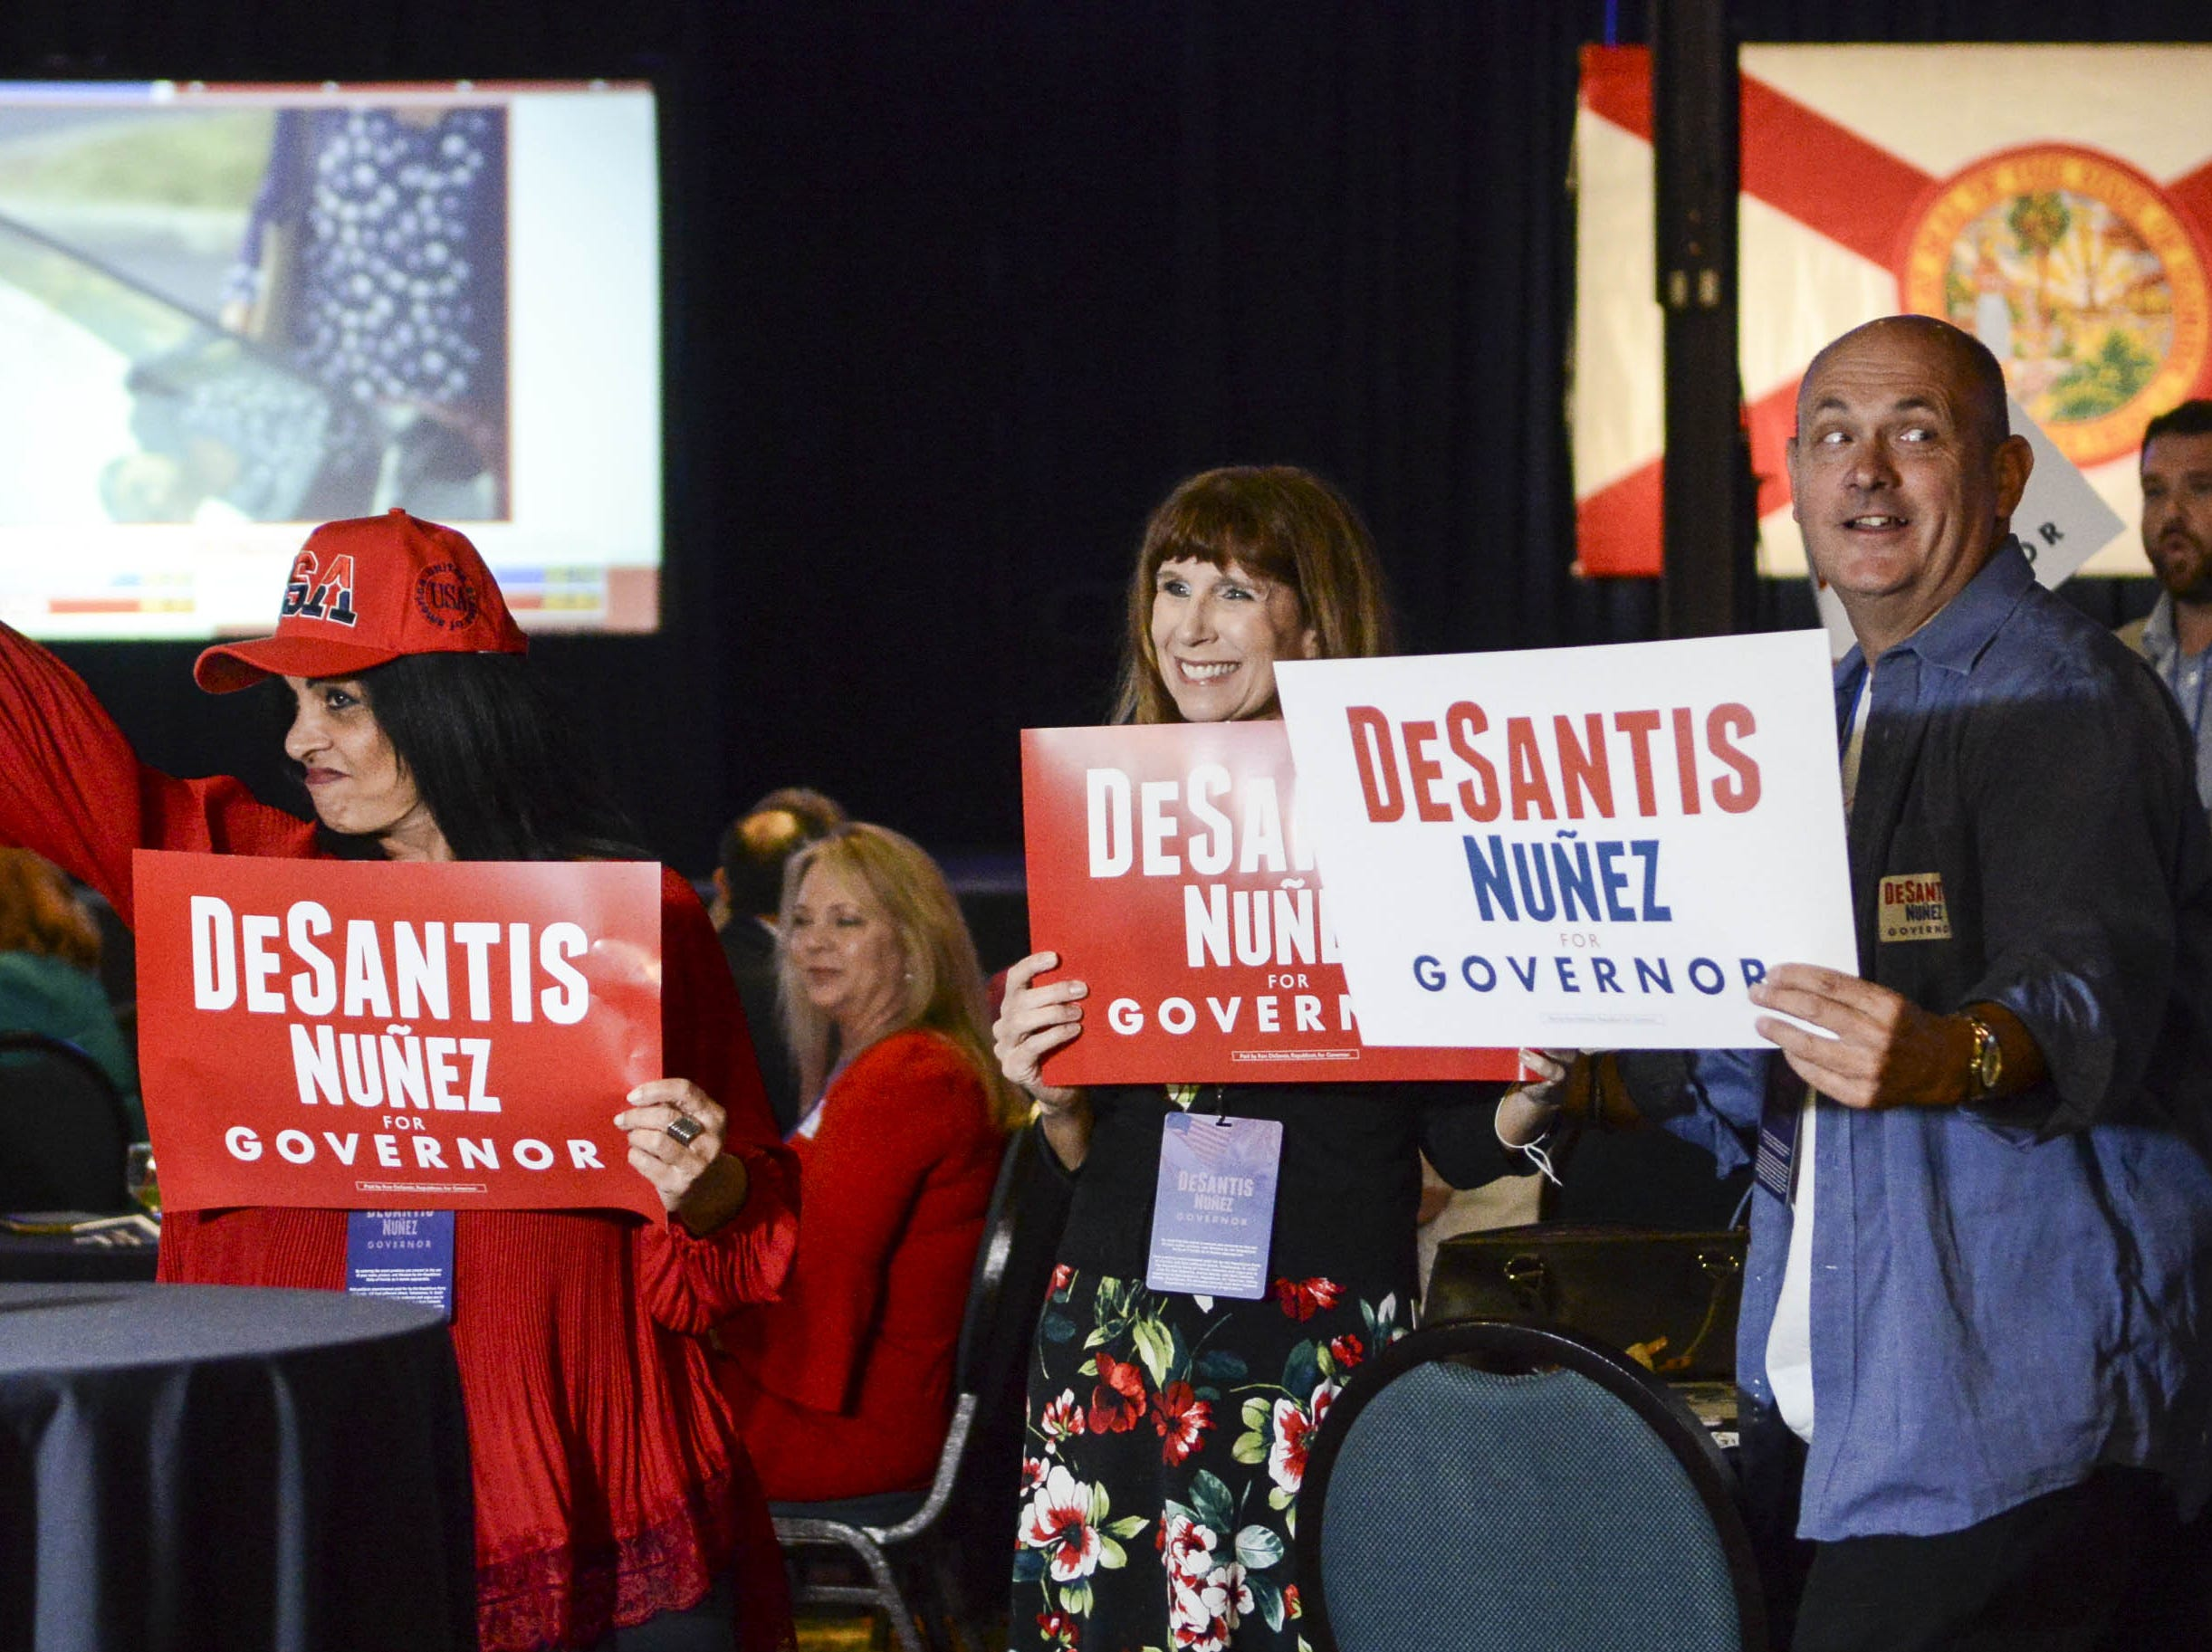 Ron DeSantis supporters wave signs during DeSantis' election watch party in Orlando.